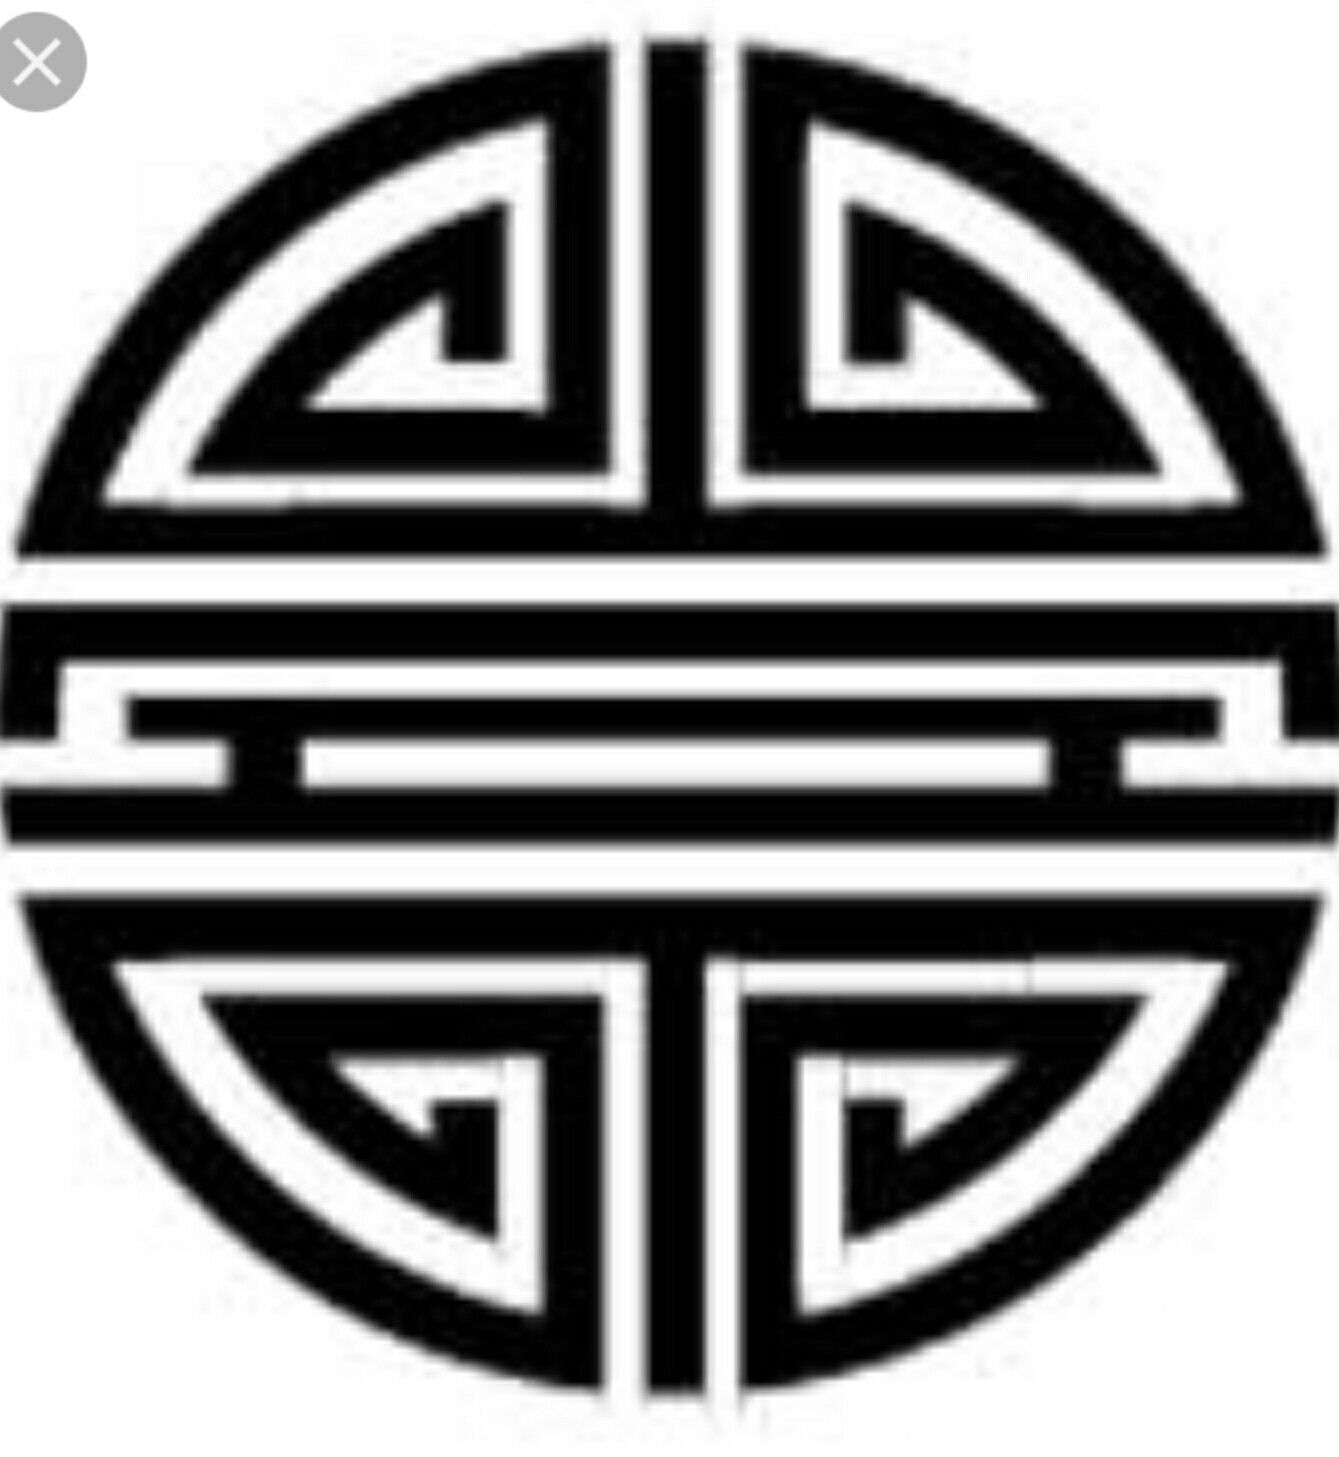 Vietnamese happiness symbol vietnam pinterest symbols tattoo longevity this symbol enhances the possibility for a healthy long and fulfilling life as the universal breath of chi dances effortlessly across your biocorpaavc Images